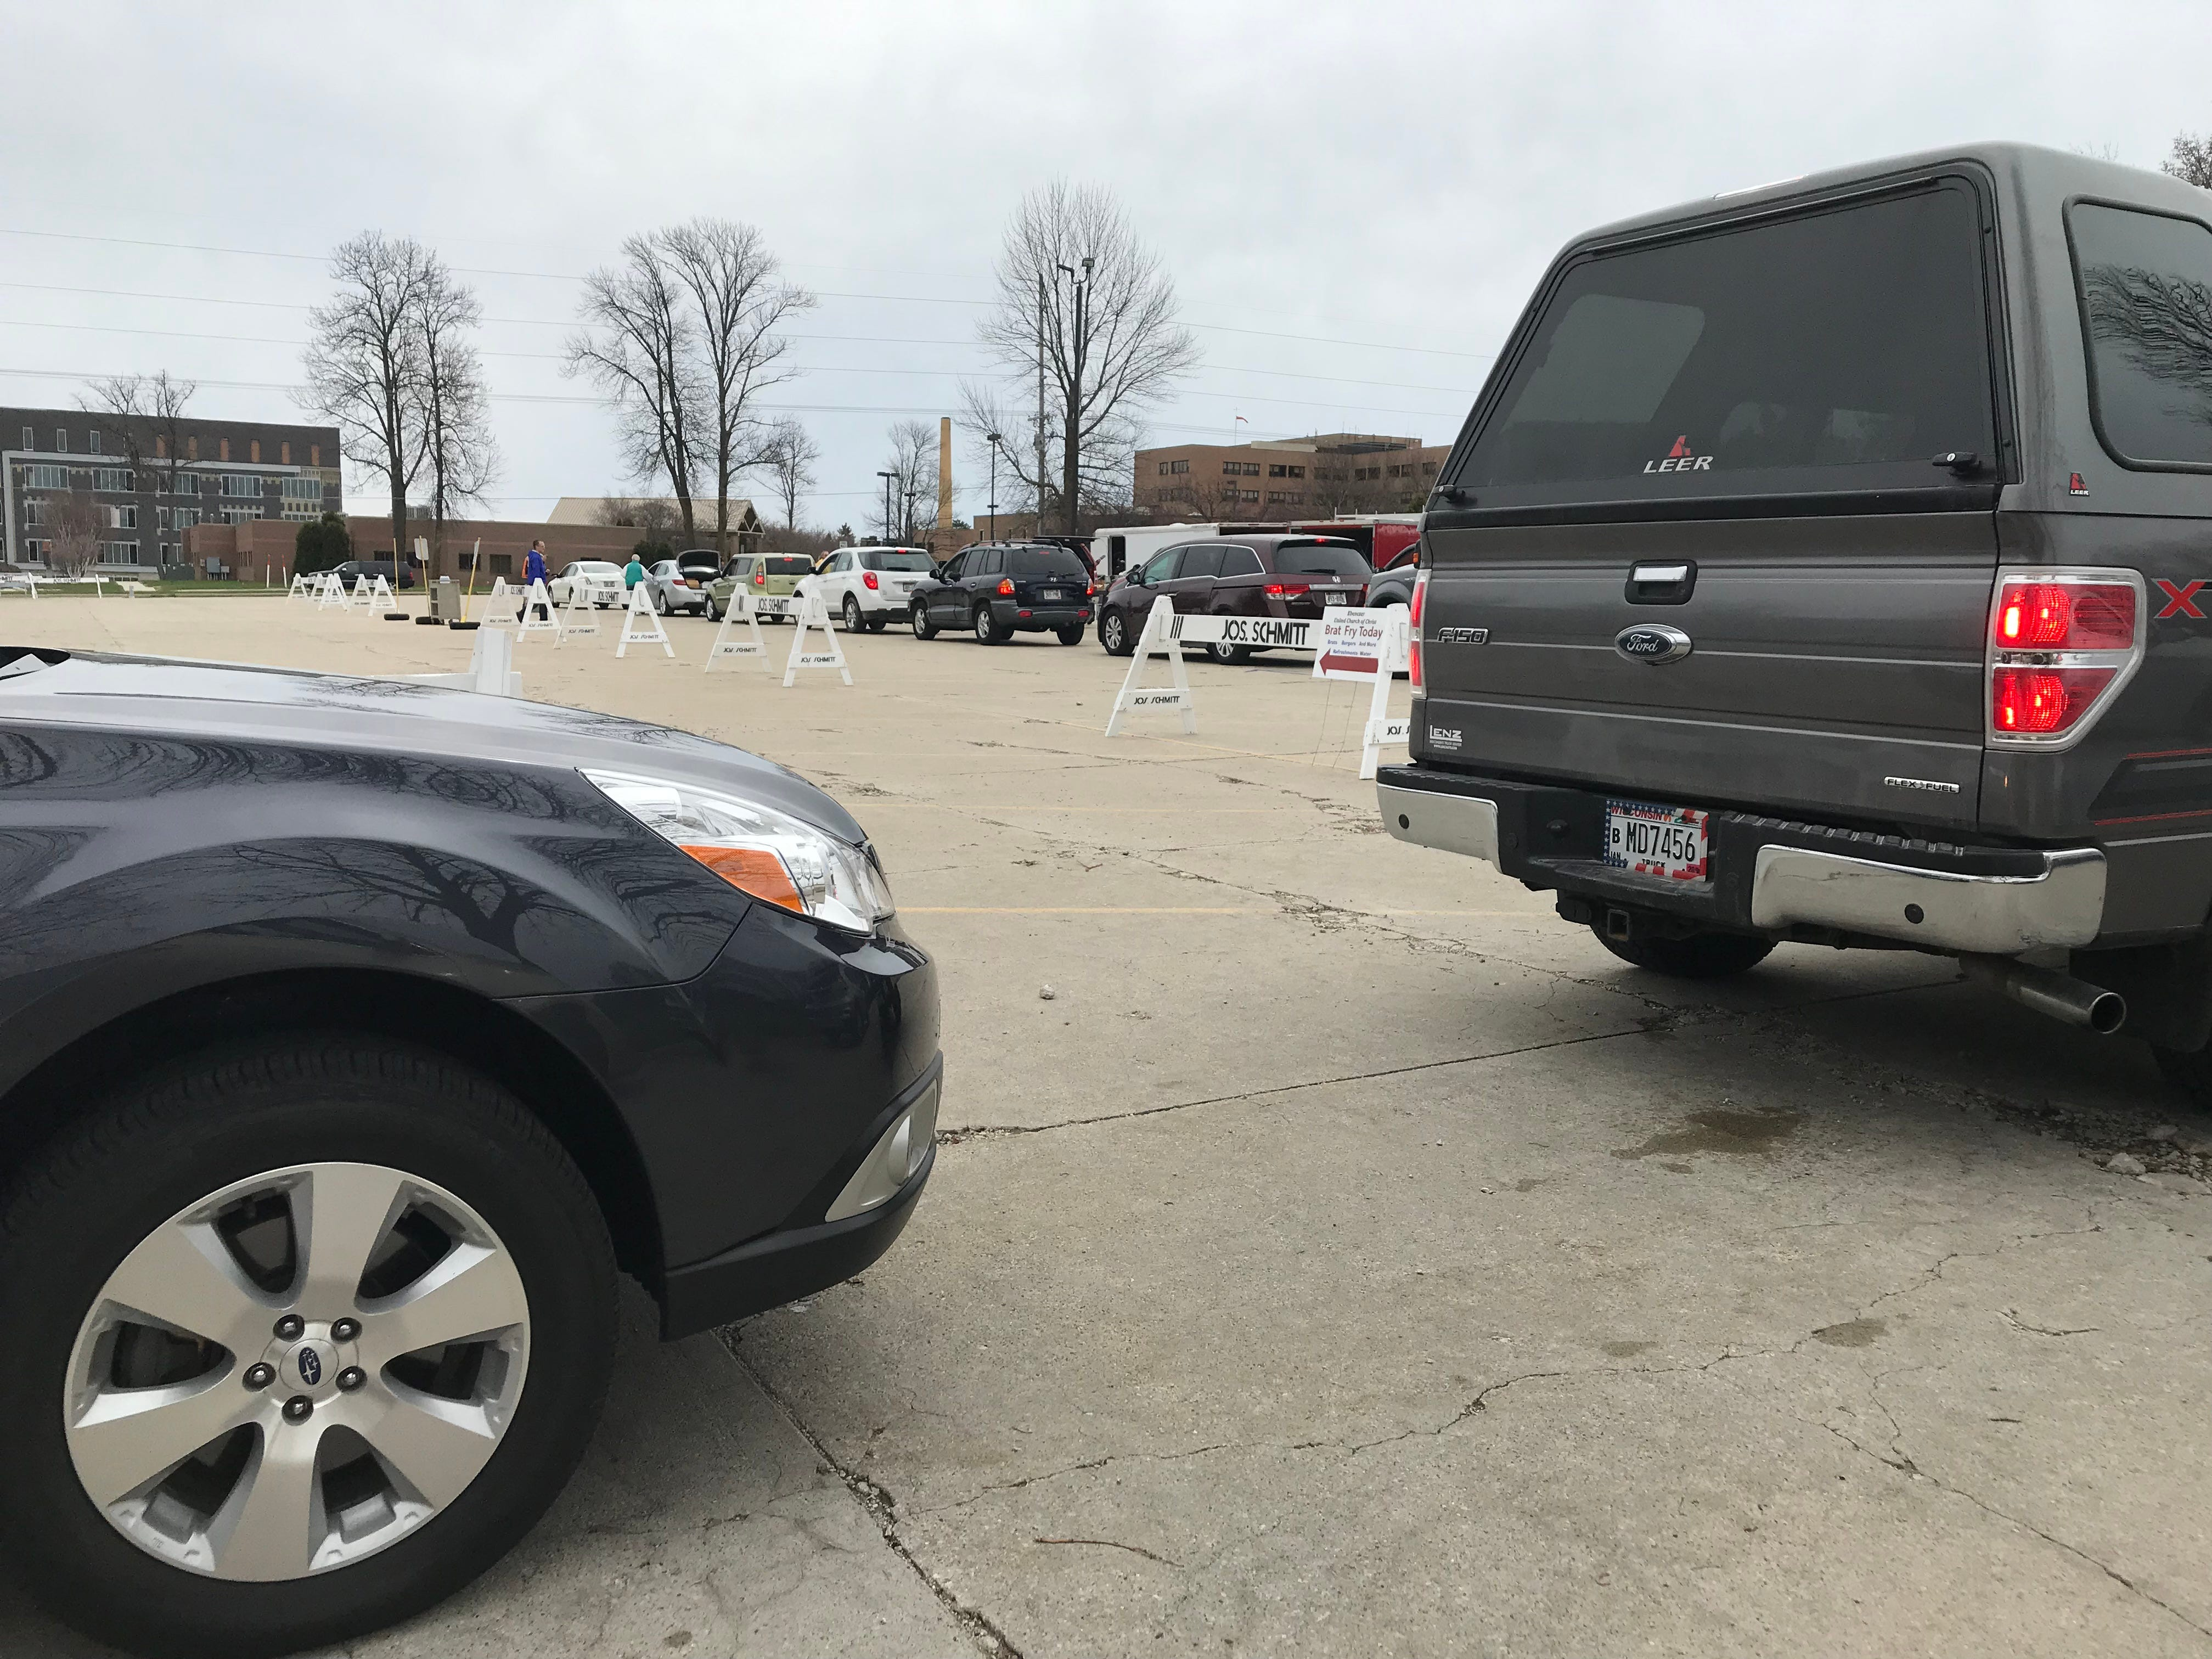 Motorists line up to recycle electronics at Ebenezer United Church of Christ, Saturday, April 27, 2019, in Sheboygan, Wis.